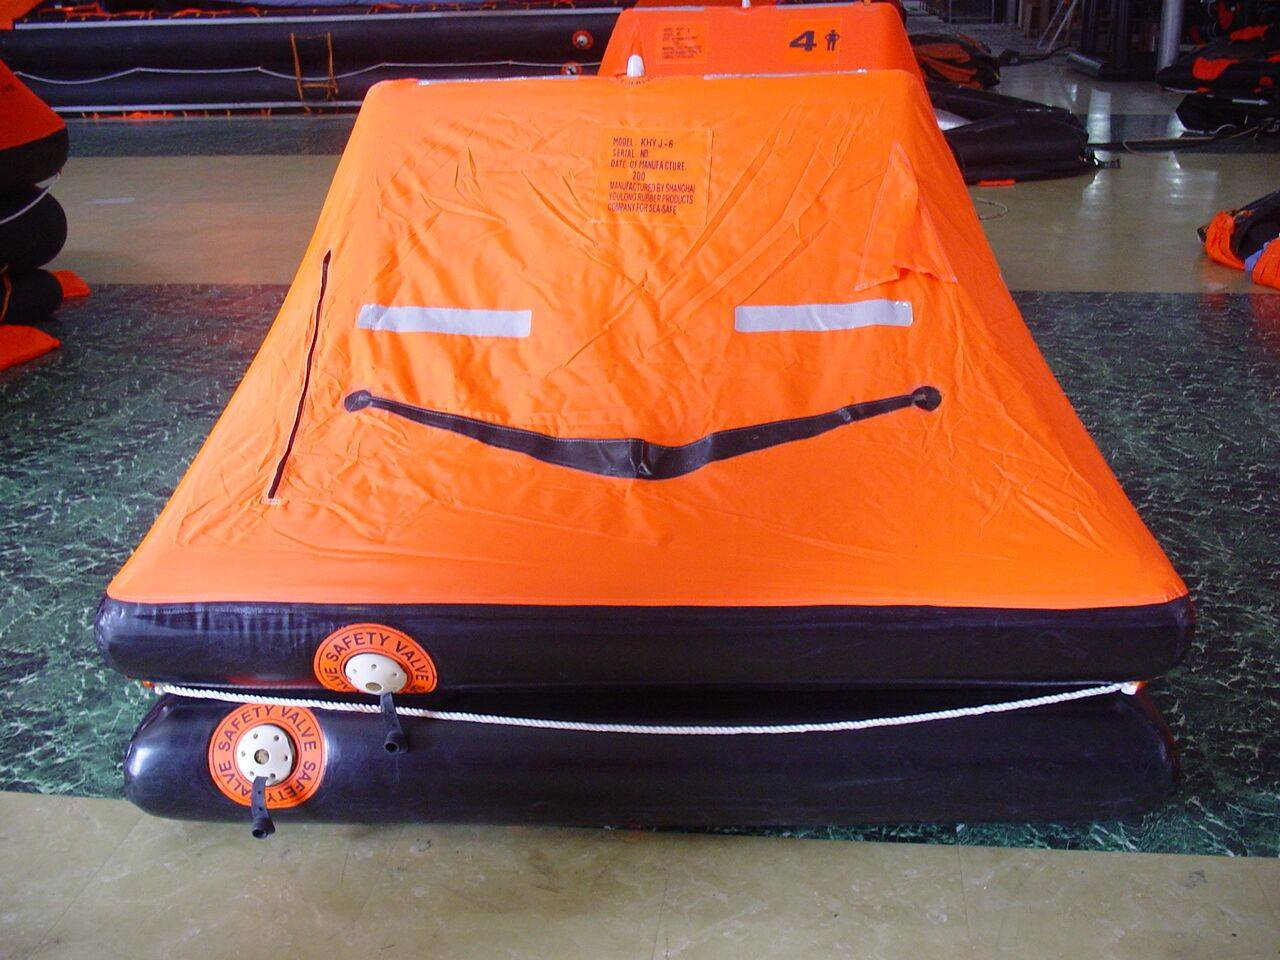 Fishing/Lleisure small craft inflatable life rafts 4 persons